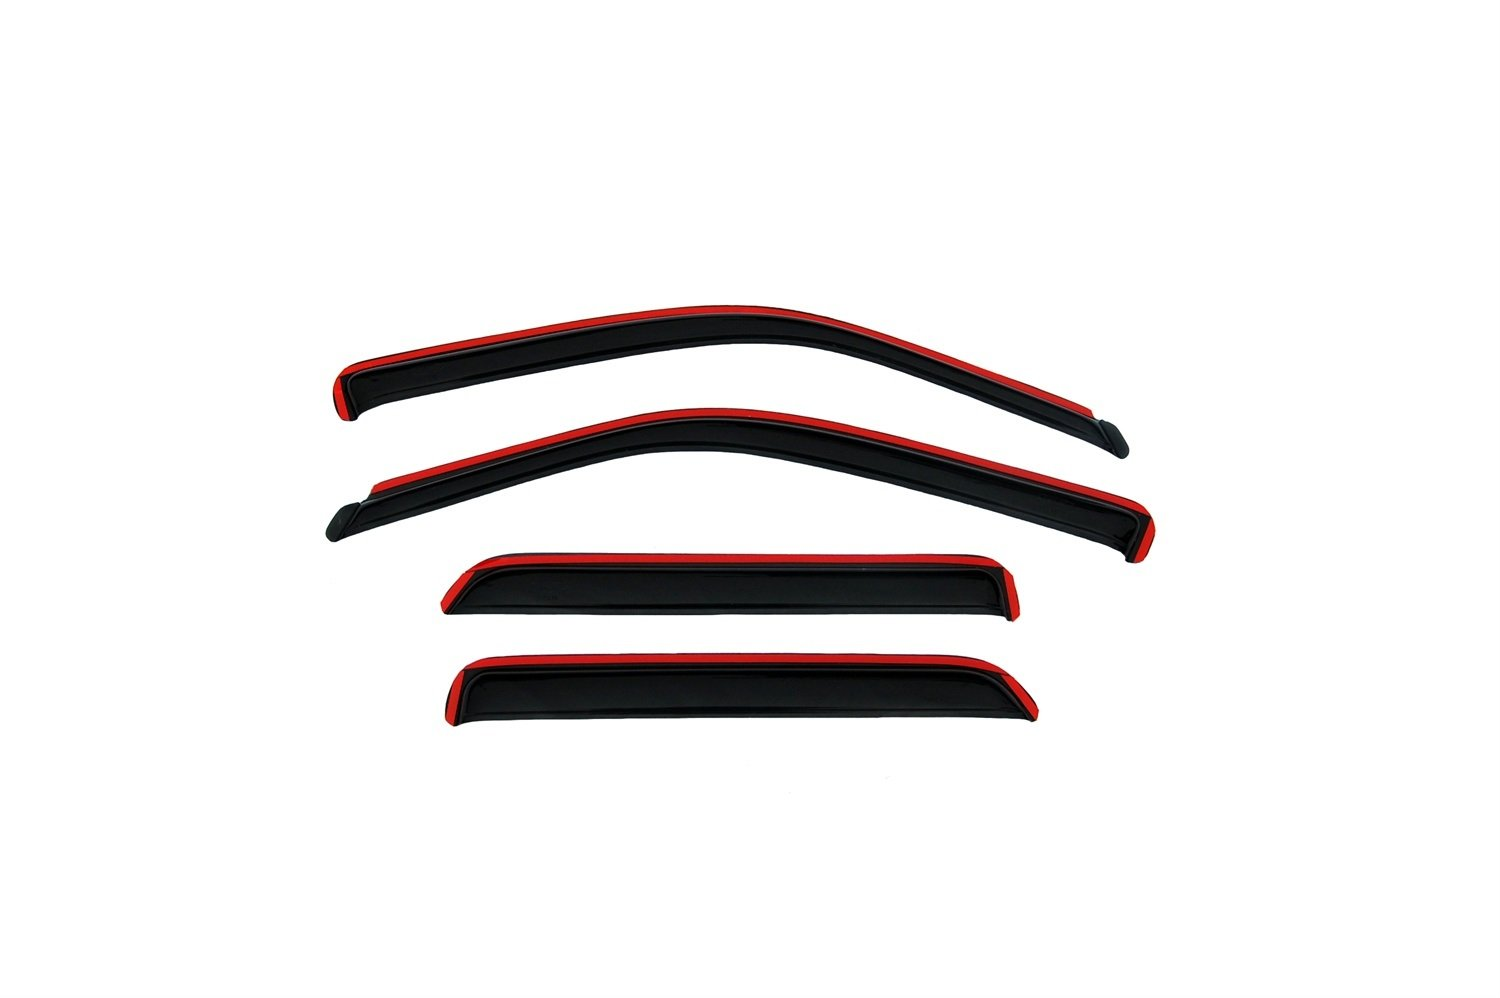 Auto Ventshade 194550 In-Channel Ventvisor Side Window Deflector, 4-Piece Set for 2006-2012 Ford Fusion, 2007-2012 Lincoln MKZ, 2006-2010 Mercury Milan, 2006 Lincoln Zephyr